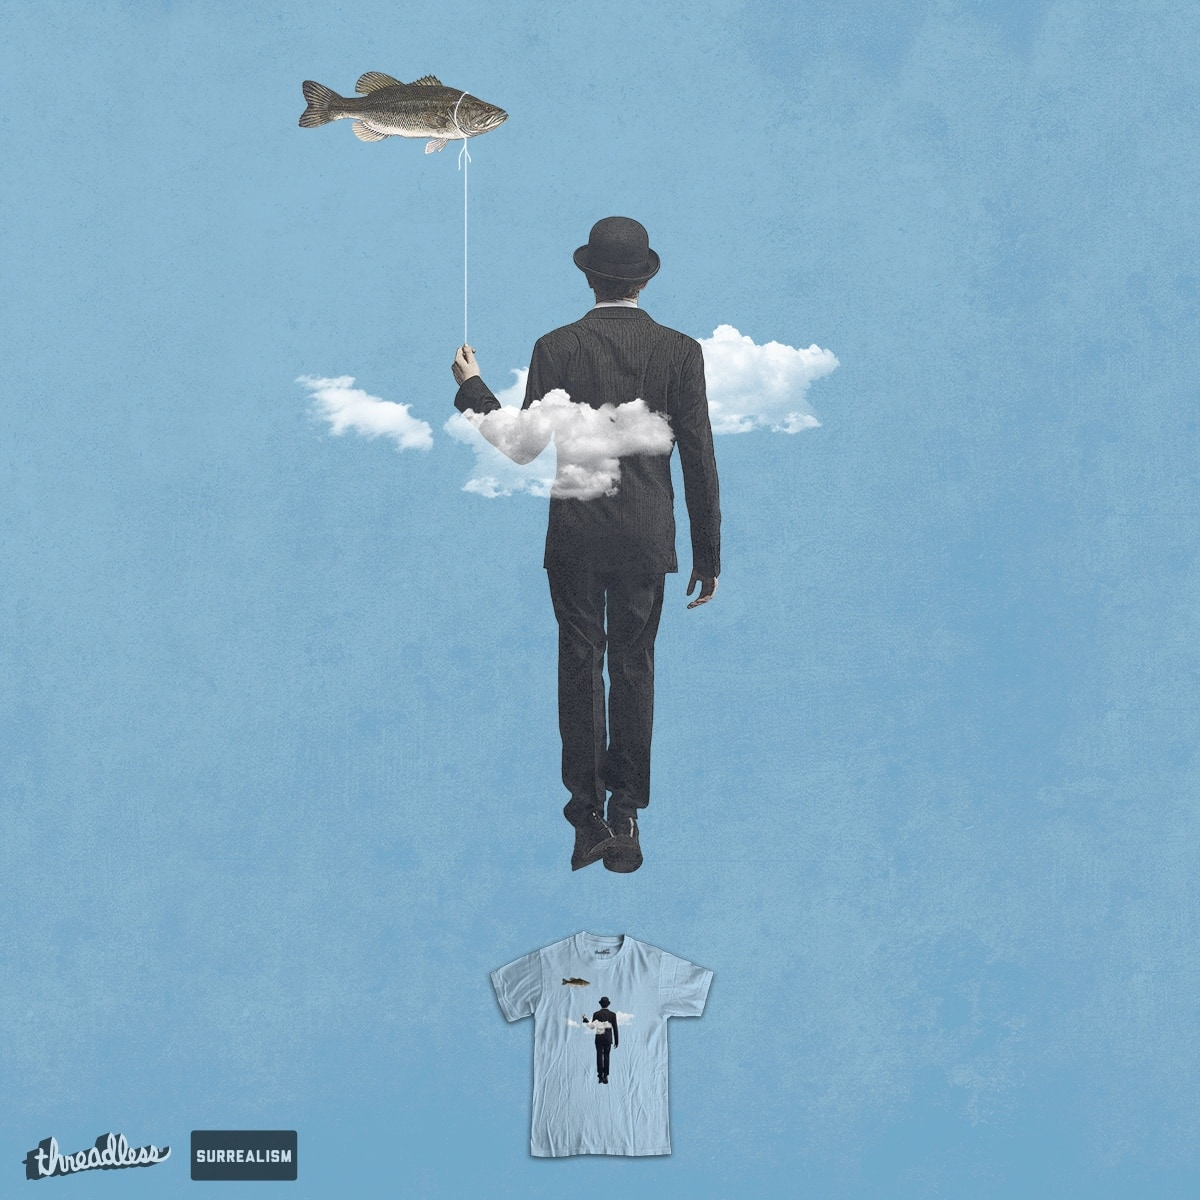 fly fishing by jerbing33 on Threadless